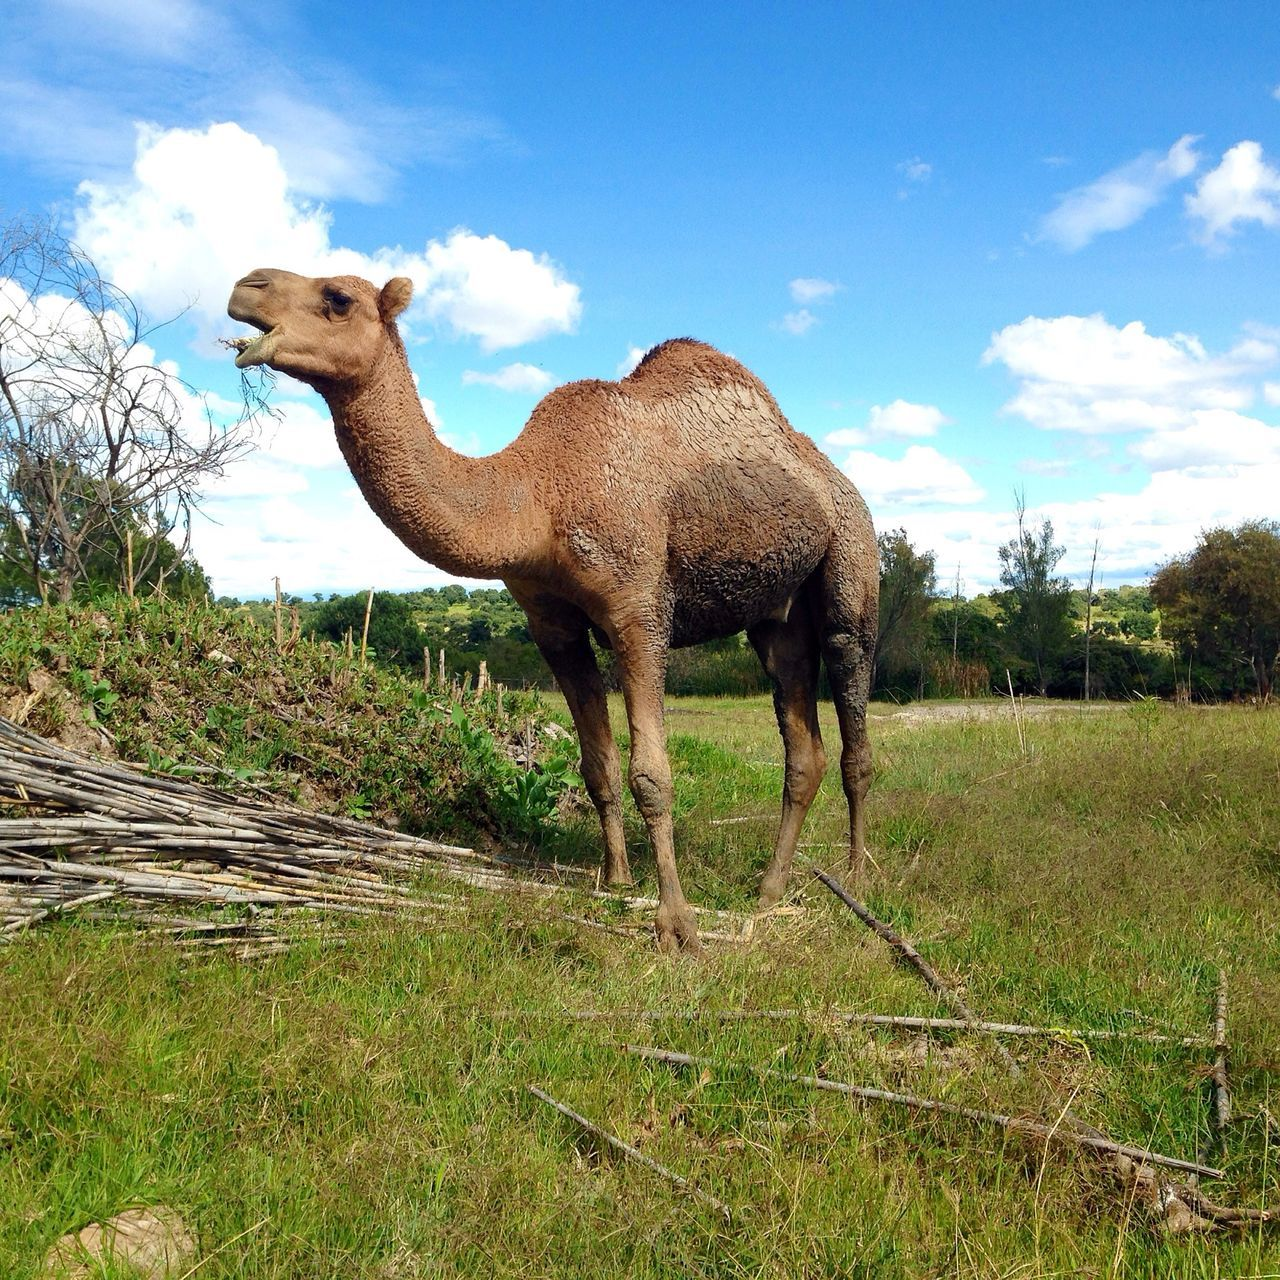 Low Angle View Of Camel On Grassy Field